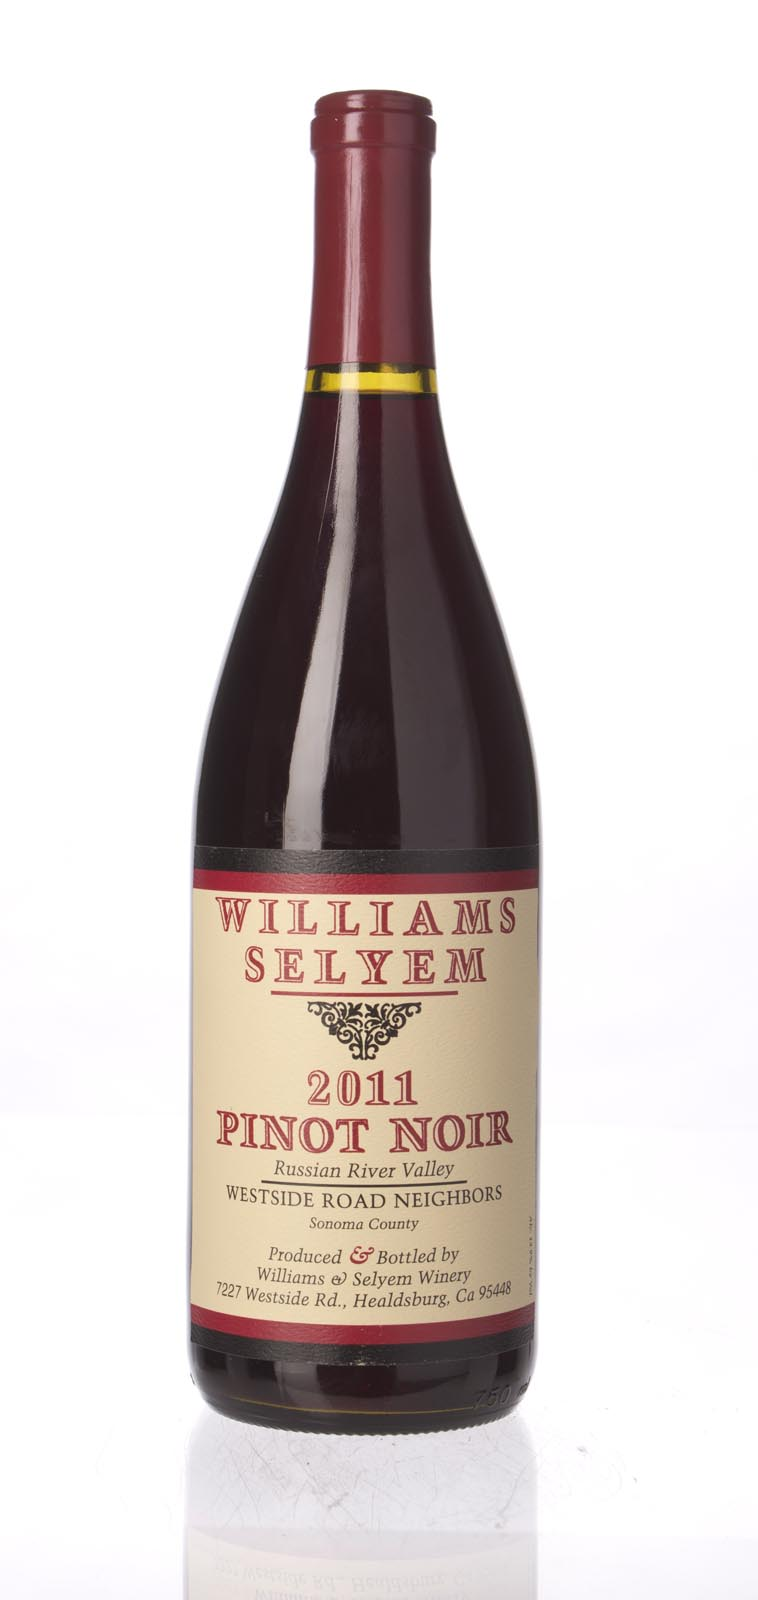 Williams Selyem Pinot Noir Westside Road Neighbors 2011, 750mL () from The BPW - Merchants of rare and fine wines.